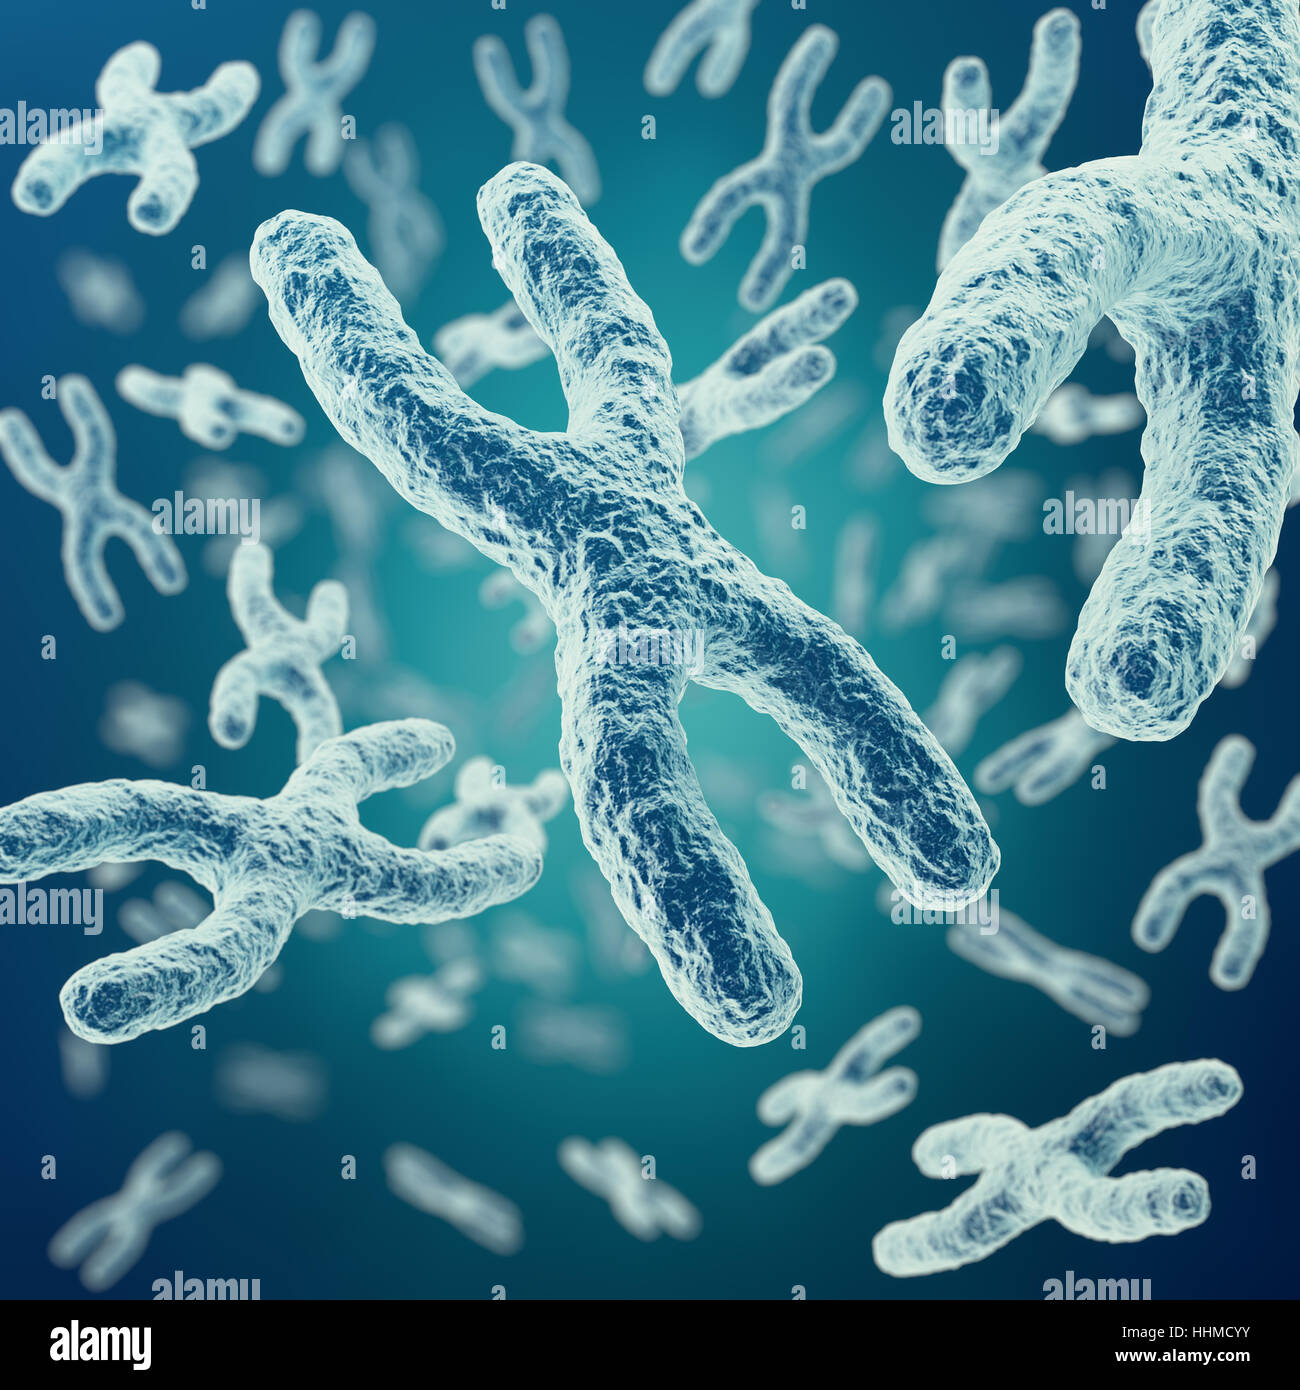 Xy Chromosomes On Background Medical Symbol Gene Therapy Or Stock Photo Royalty Free Image